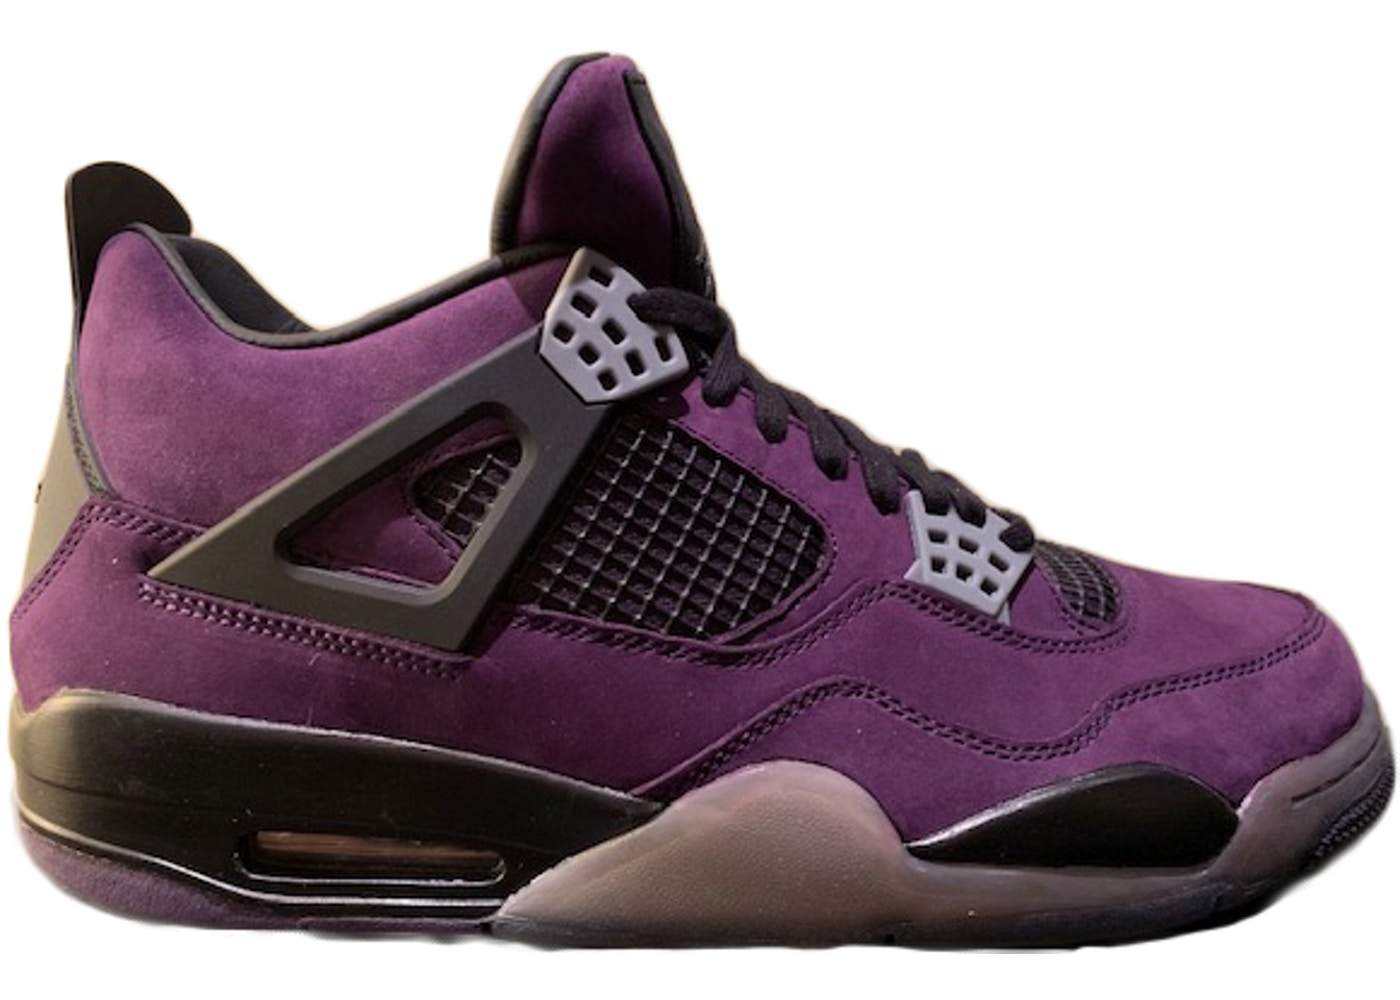 separation shoes 5f743 1d2a2 Jordan 4 Retro Travis Scott Purple (Friends and Family)